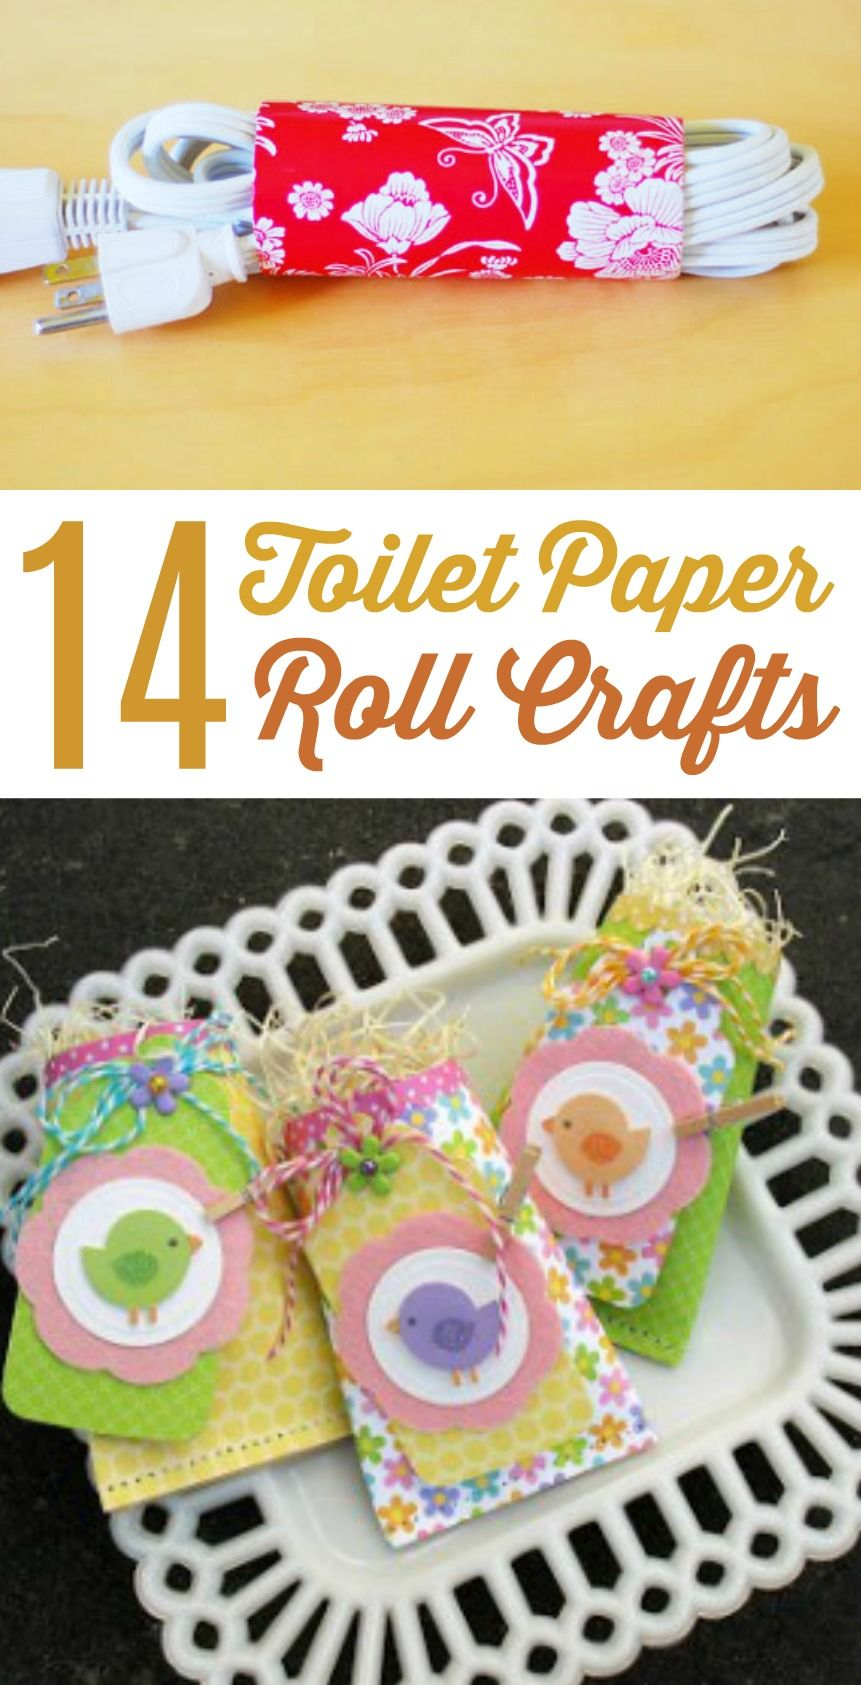 46+ Toilet paper rolls crafts for adults ideas